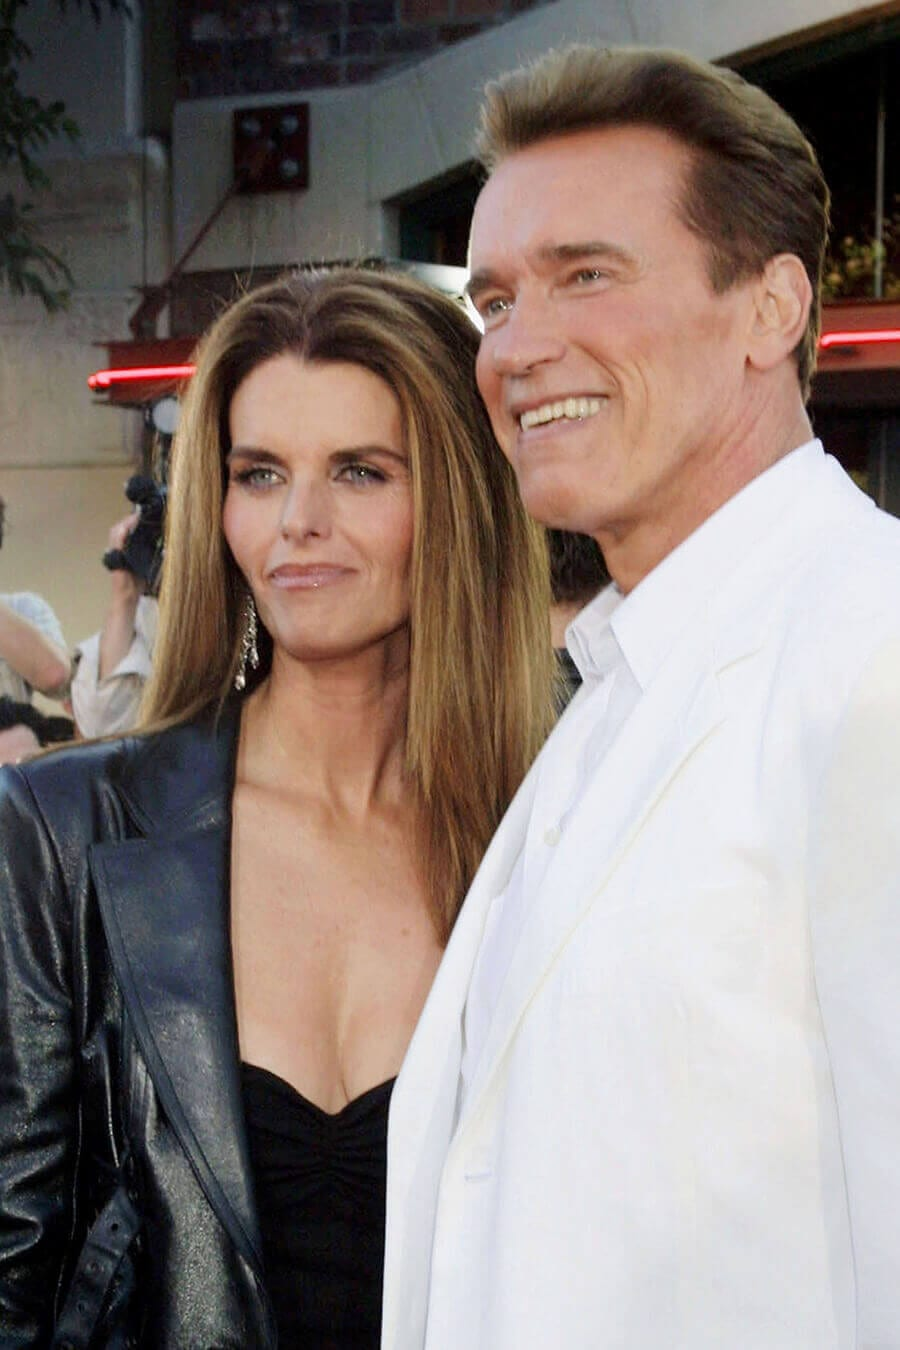 Maria Shriver and Arnold Schwarzenegger in 2003. Photo credit: Kathy Hutchins / Shutterstock.com